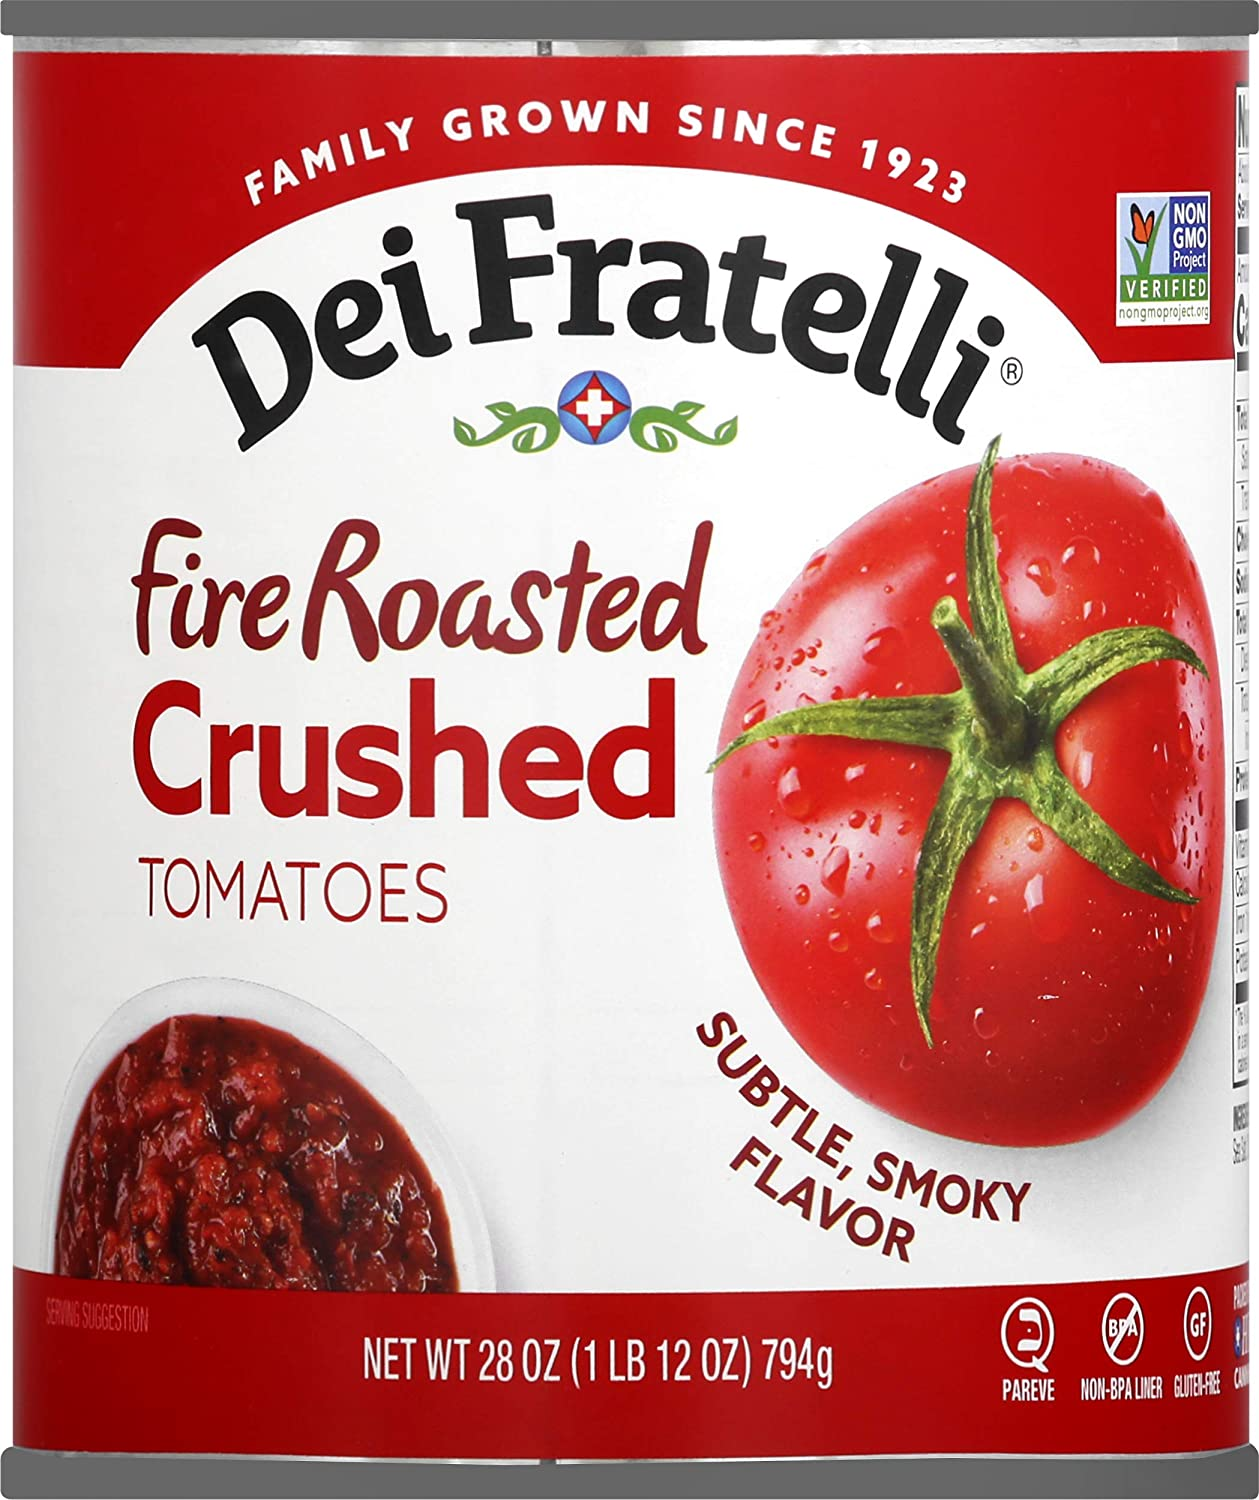 Dei Fratelli Fire Roasted Crushed Max 77% OFF Super beauty product restock quality top Tomatoes All - Wa Natural No